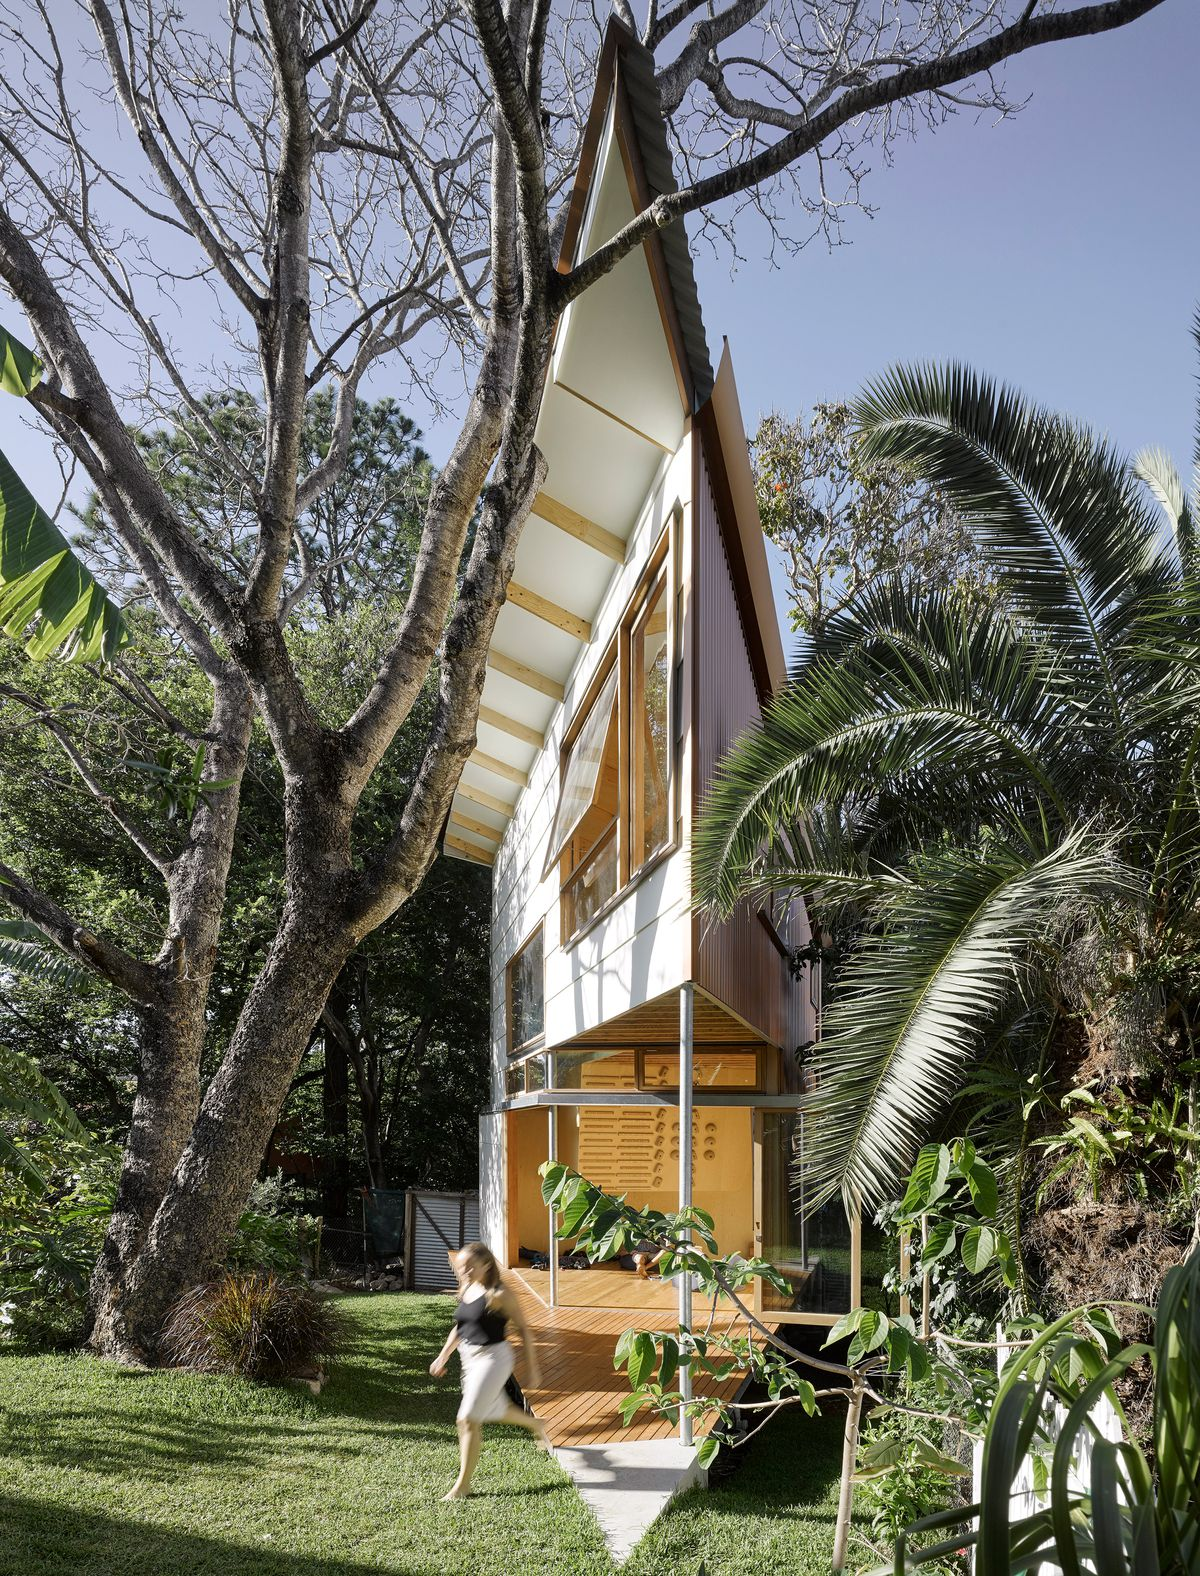 Tiny Home Meets Treehouse In This Angular Backyard Extension Curbed